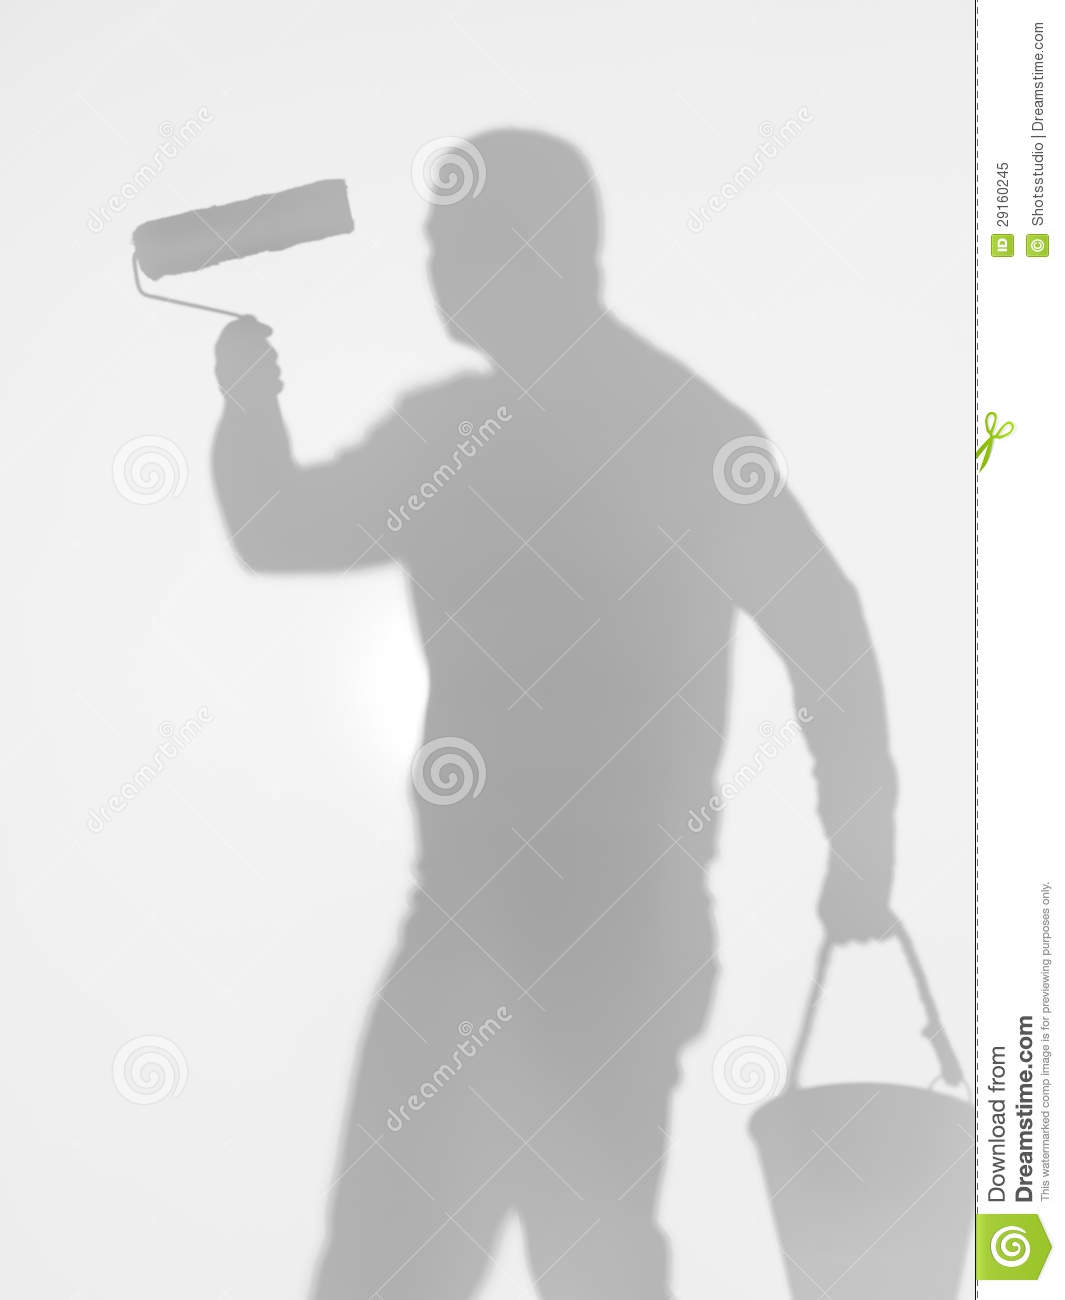 Painter And Decorator Prices >> Man Holding A Paint Roller And A Bucket, Silhouette Royalty Free Stock Photo - Image: 29160245